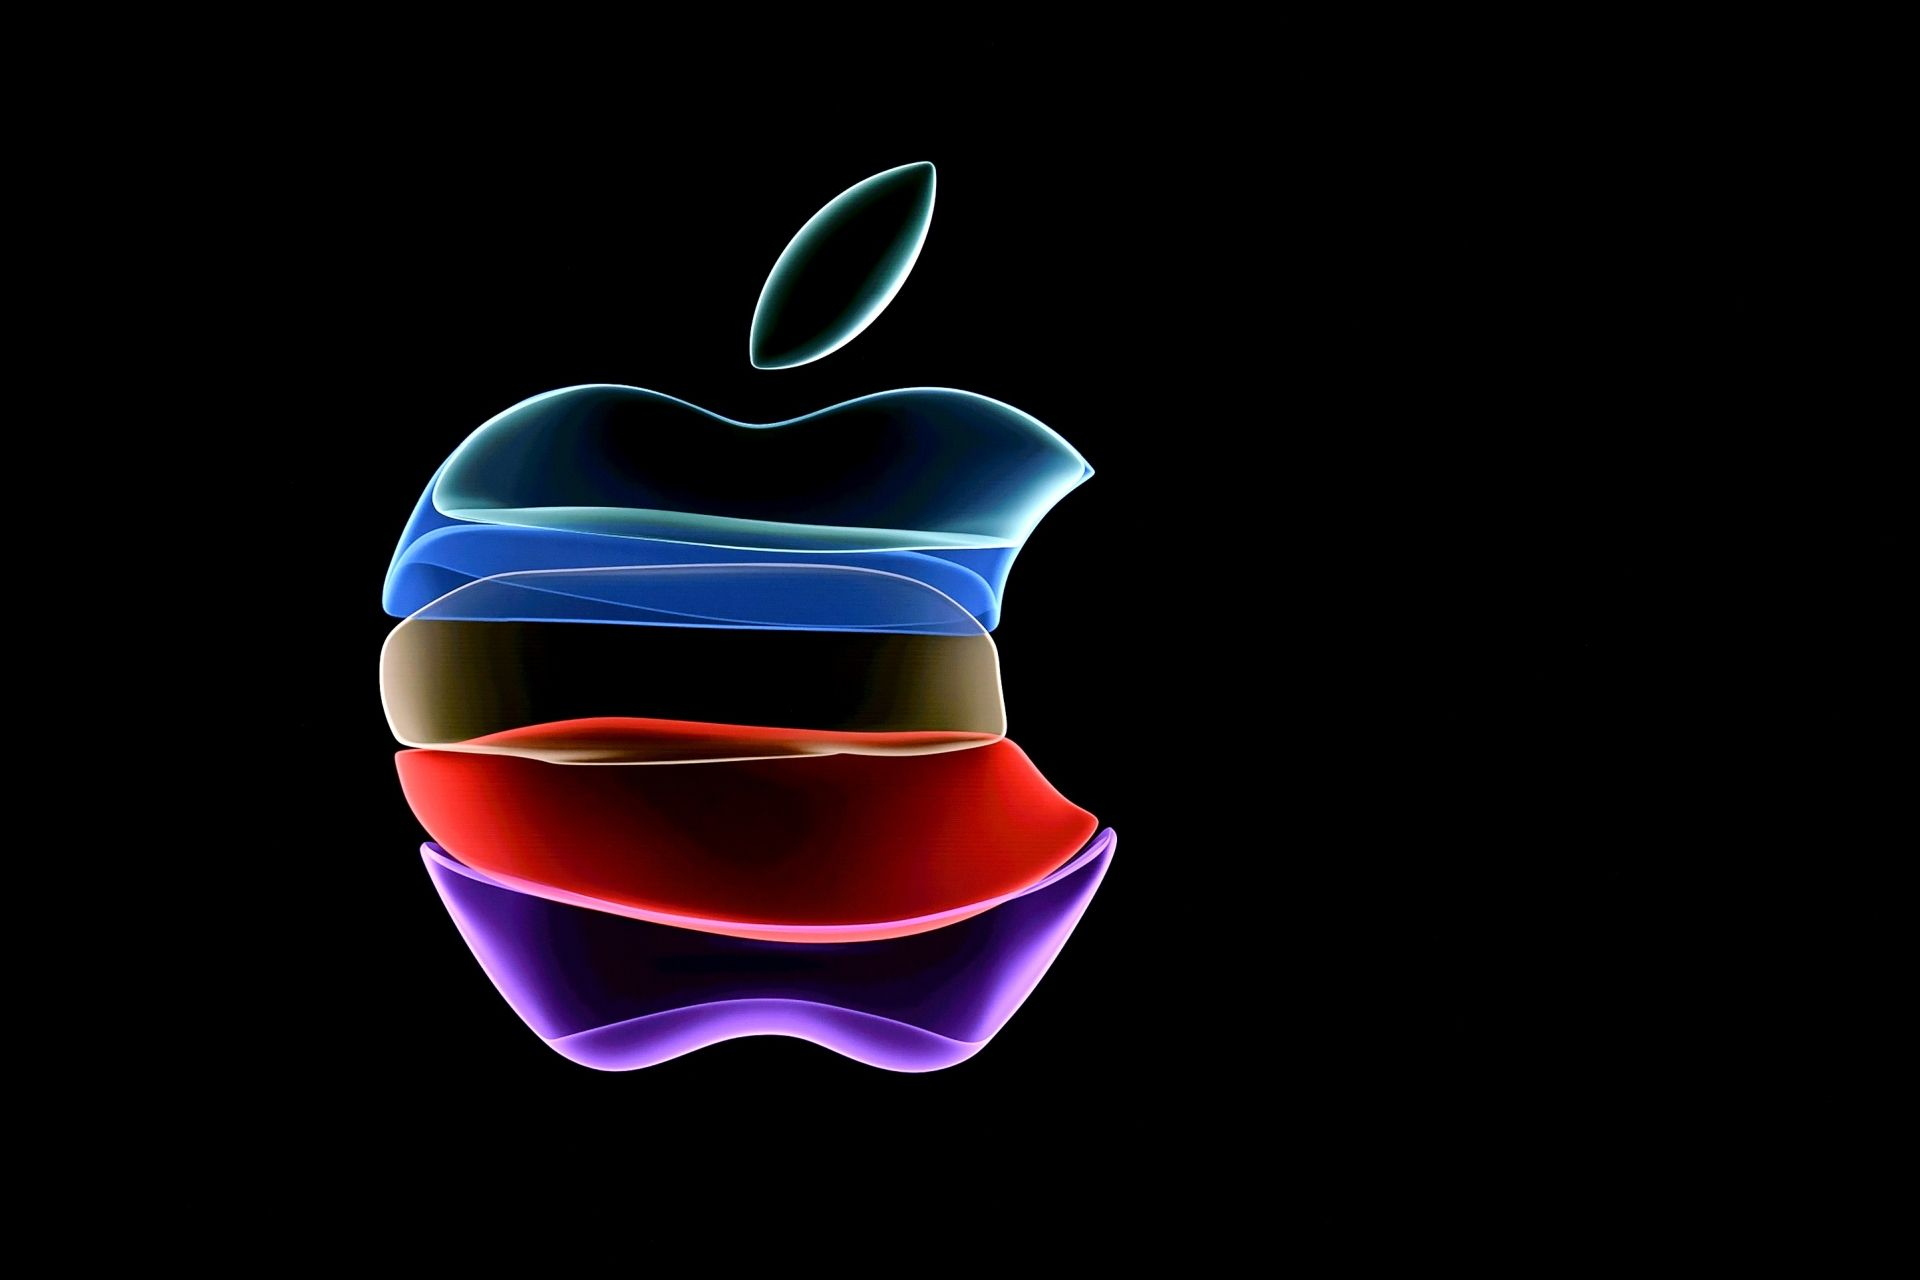 (FILES) In this file photo the apple logo is projected on a screen before the start of a product launch event at Apple's headquarters in Cupertino, California, on September 10, 2019. - Apple on September 8, 2020 fired off invitations to a September 15 online event expected to introduce a new-generation iPhone tailored for superfast 5G telecom networks. The typically tight-lipped technology titan revealed only that the presentation would be streamed starting at 1700 GMT from its headquarters in Silicon Valle